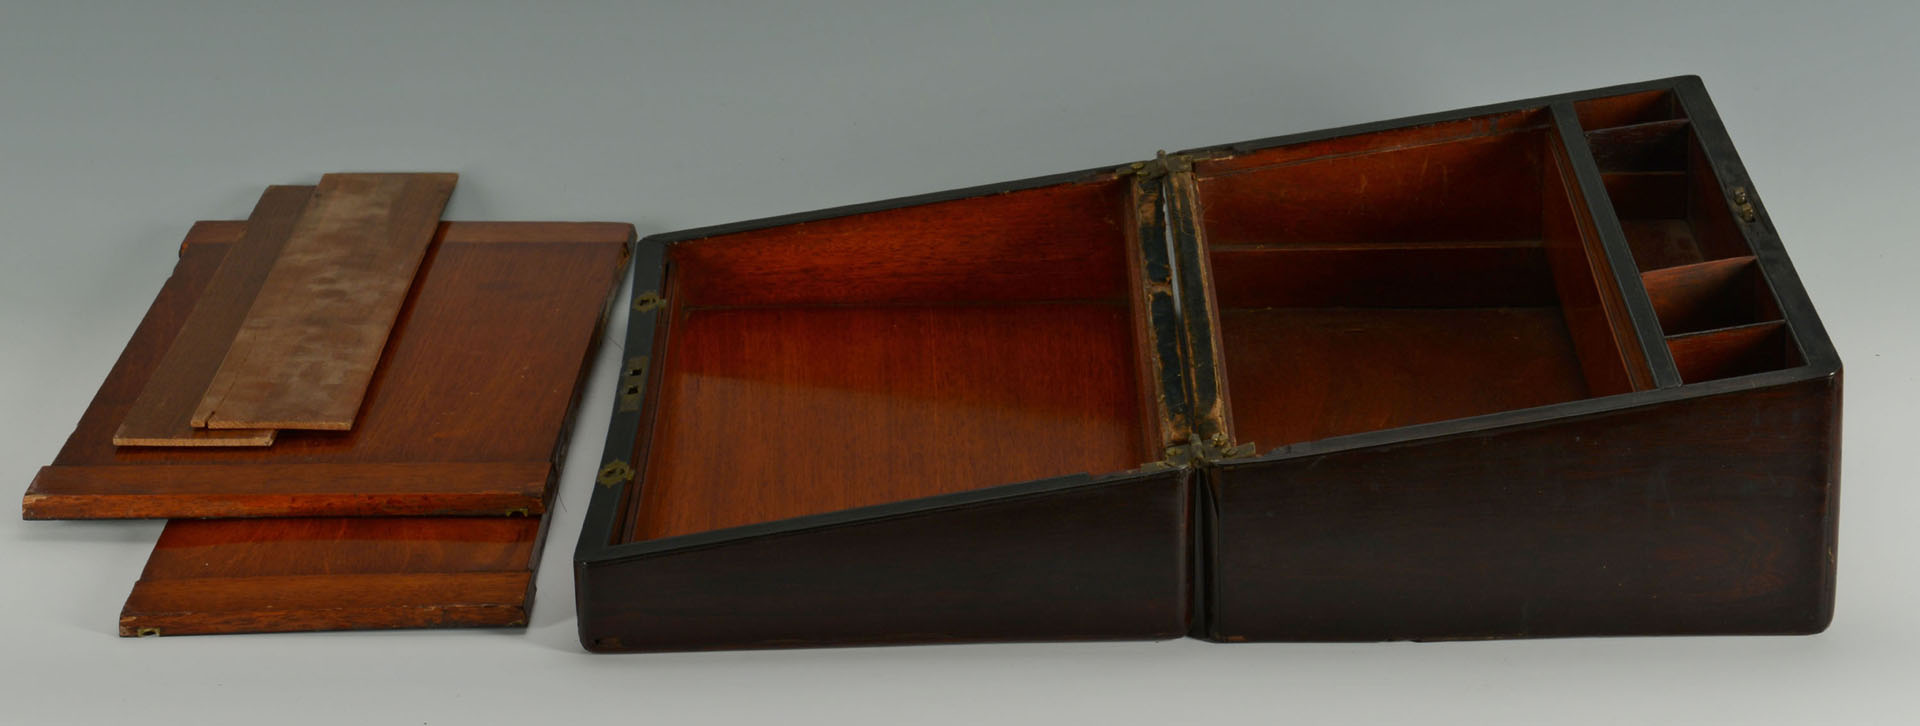 Lot 358: Rosewood and Mother of Pearl Inlay Lap Desk